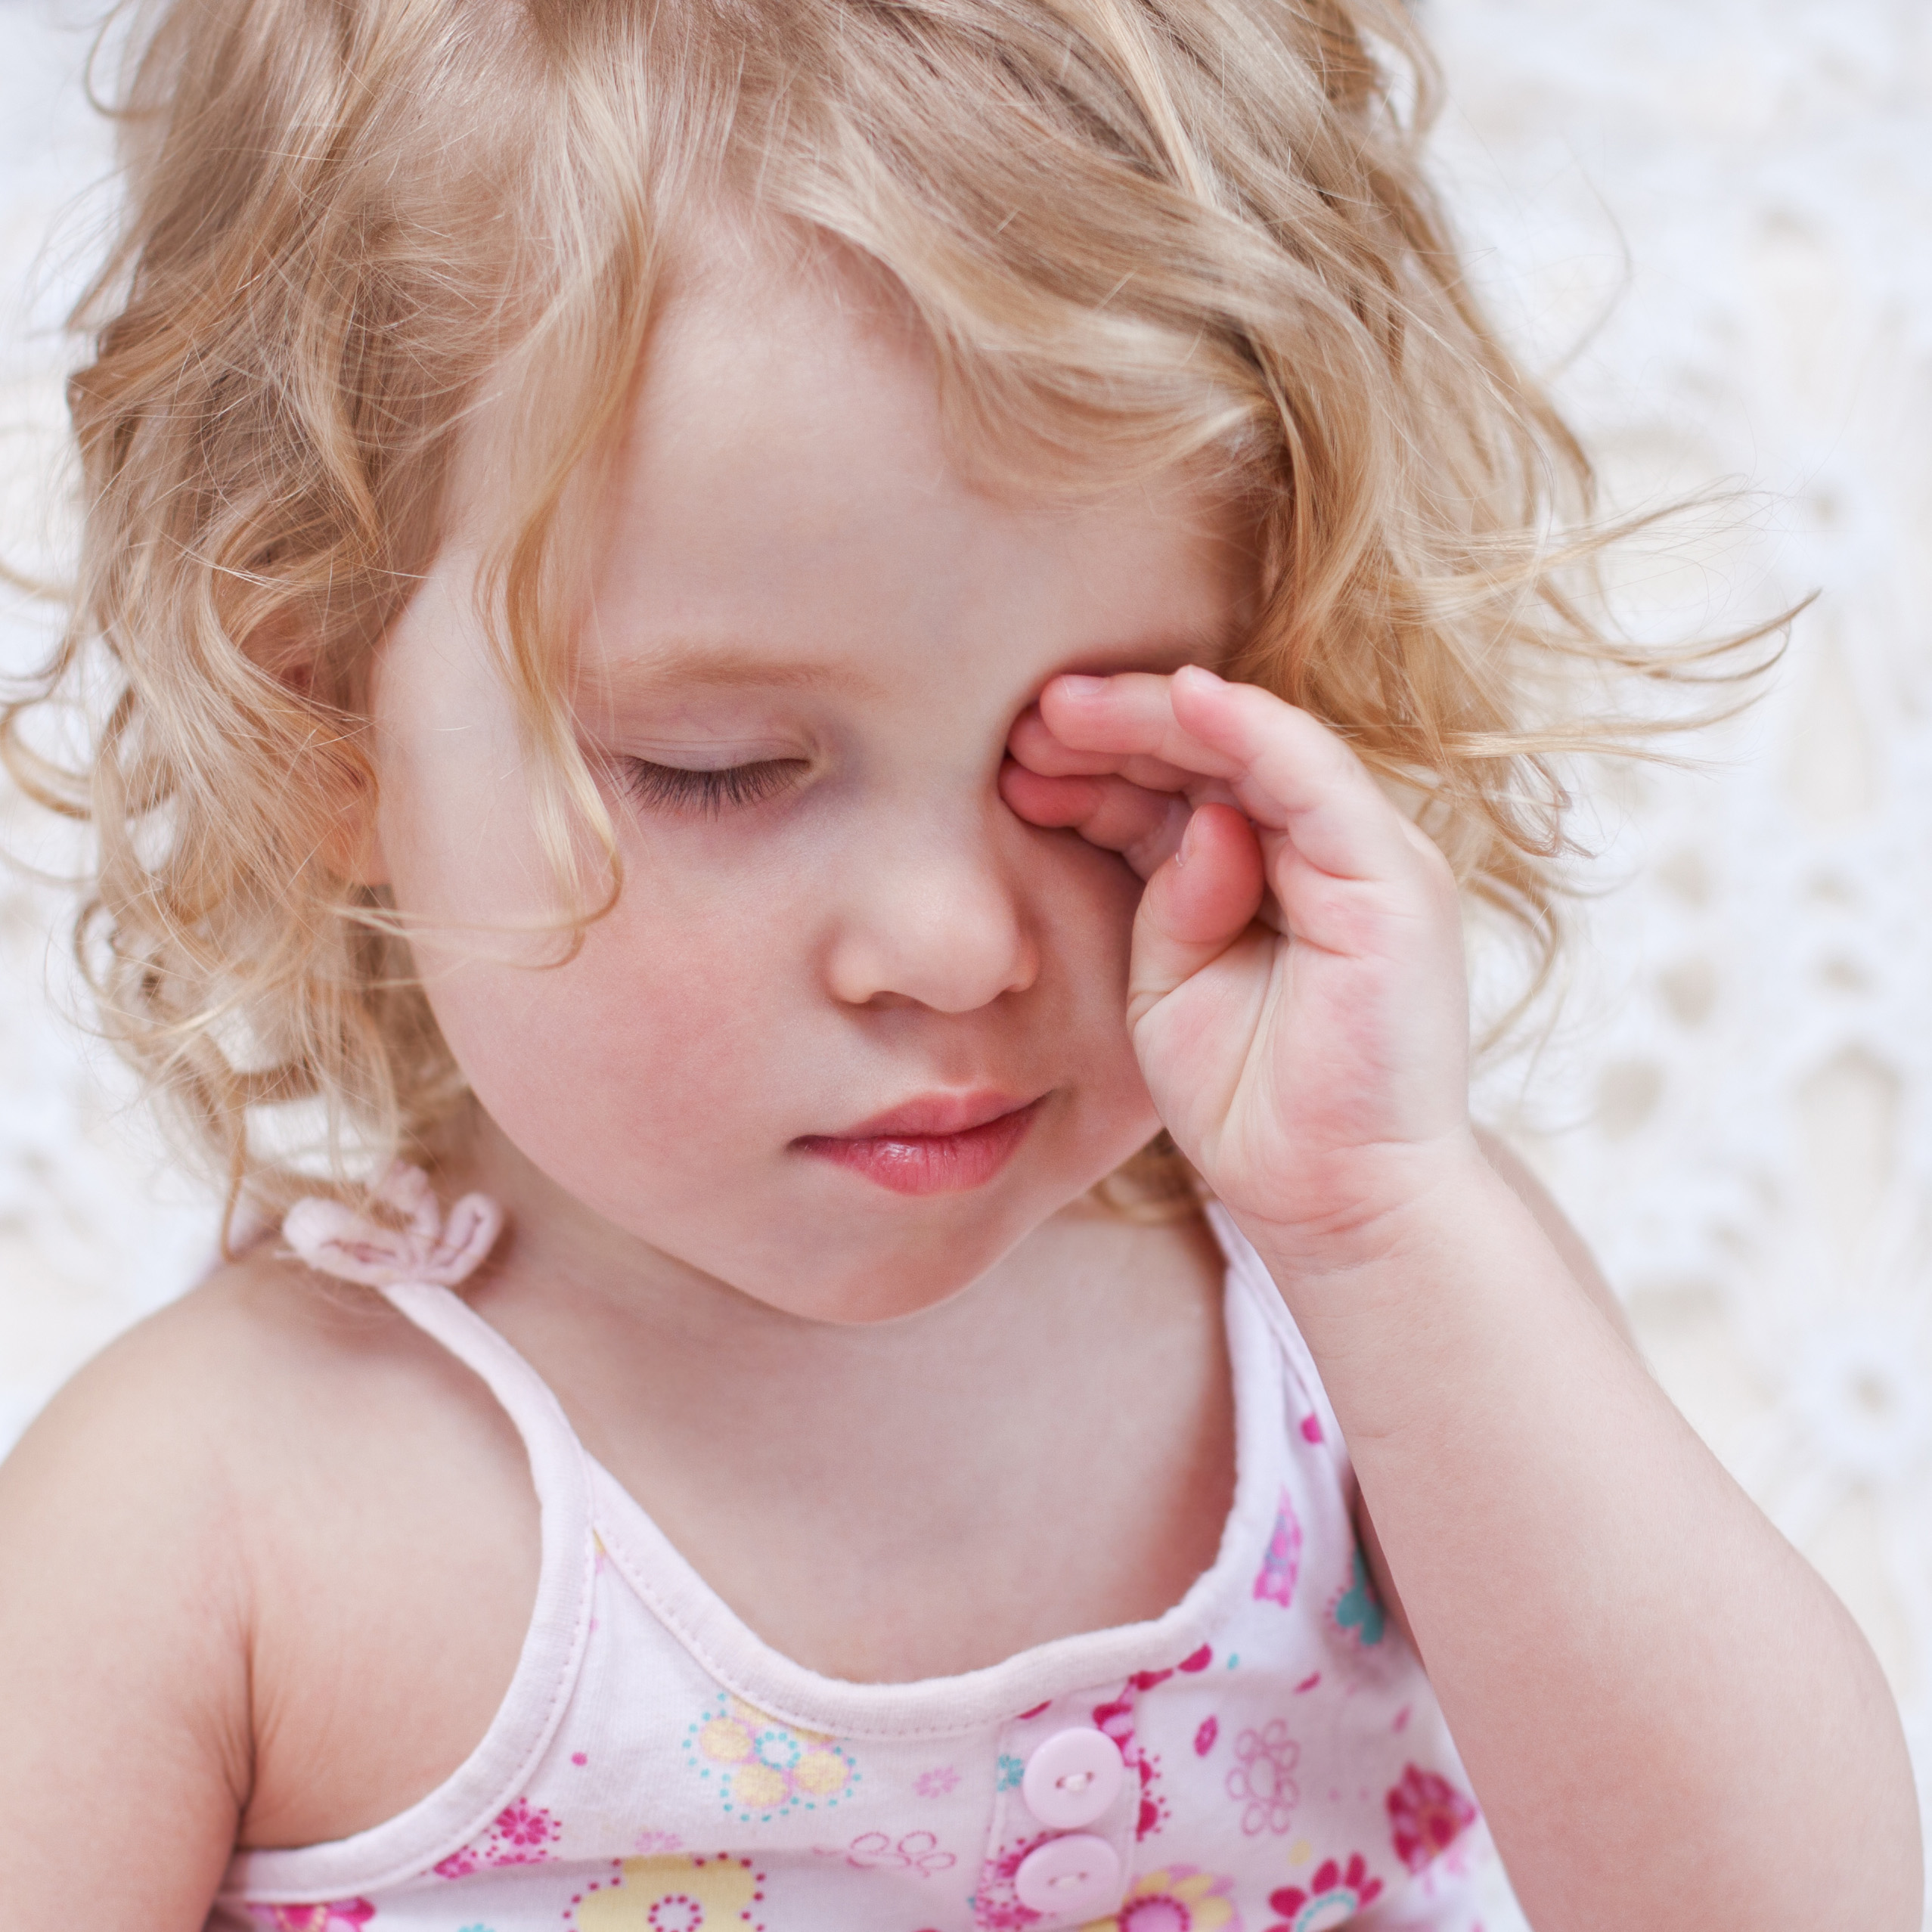 7 frequently asked questions about pink eye